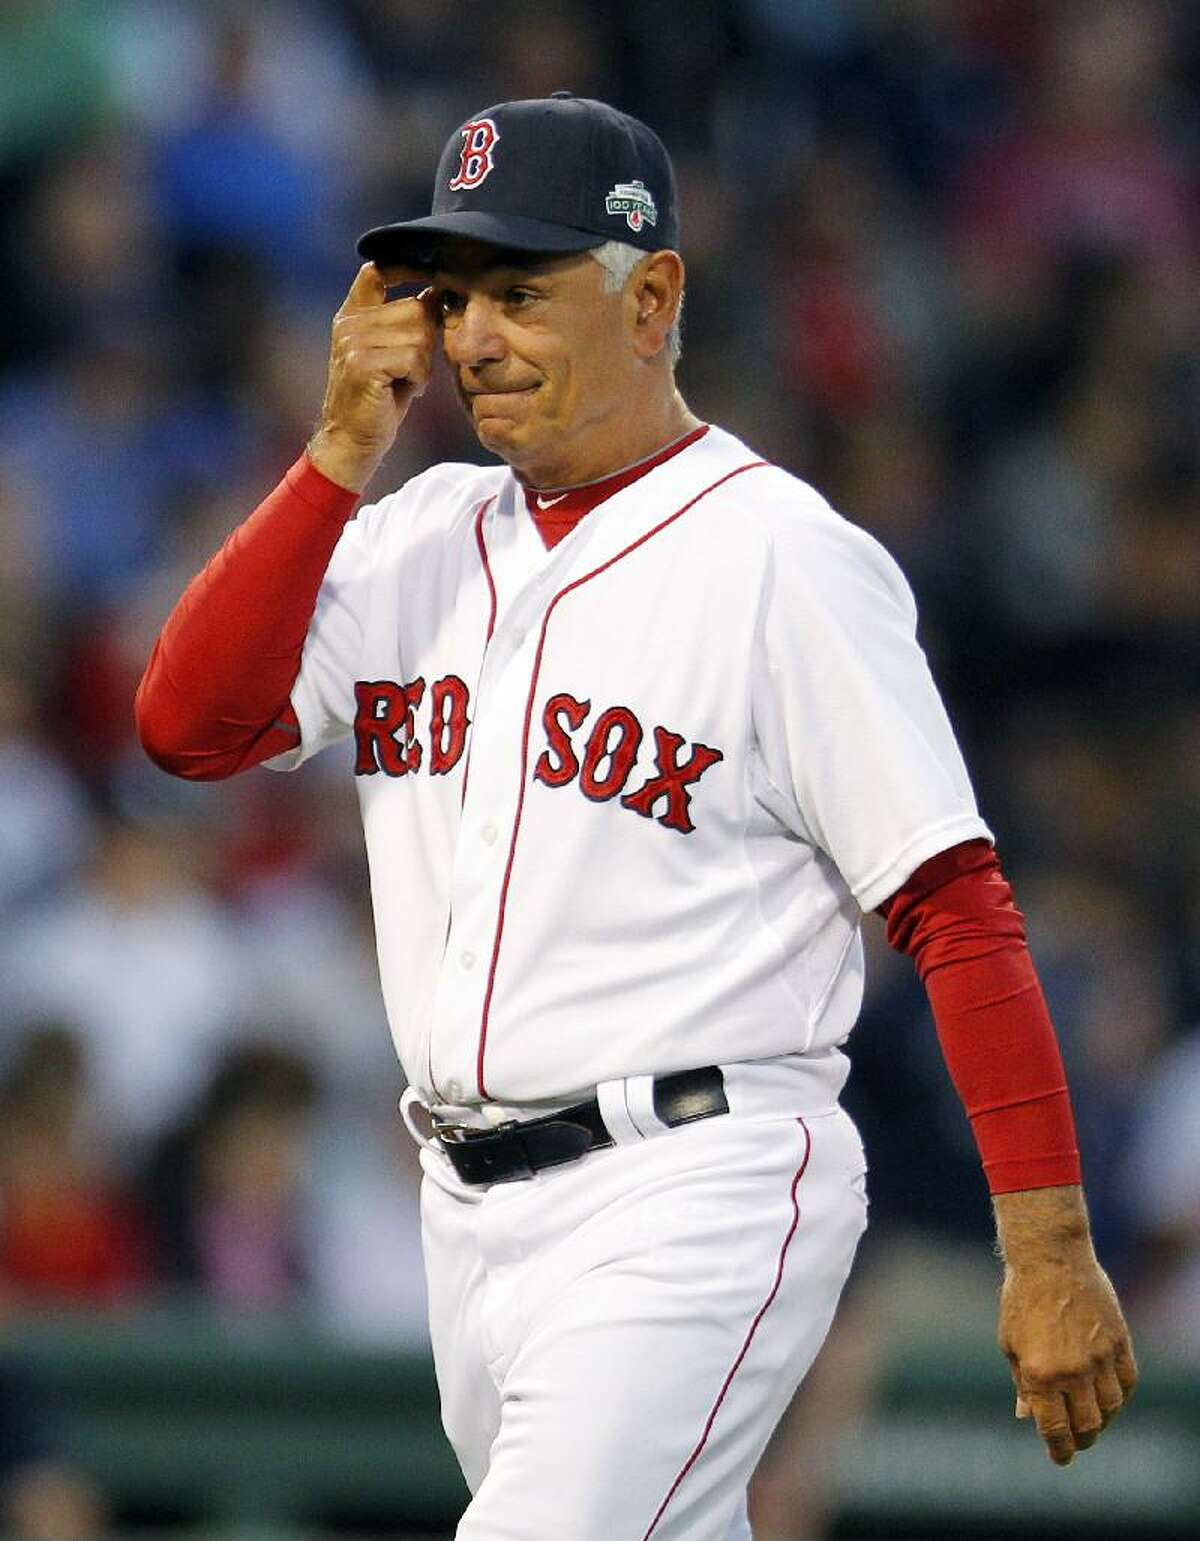 ASSOCIATED PRESS Boston Red Sox manager Bobby Valentine walks back to the dugout after removing pitcher Alfredo Aceves in the eighth inning of Saturday's game against the New York Yankees at Fenway Park in Boston. The Yankees rallied from a 9-0 deficit to win 15-9.